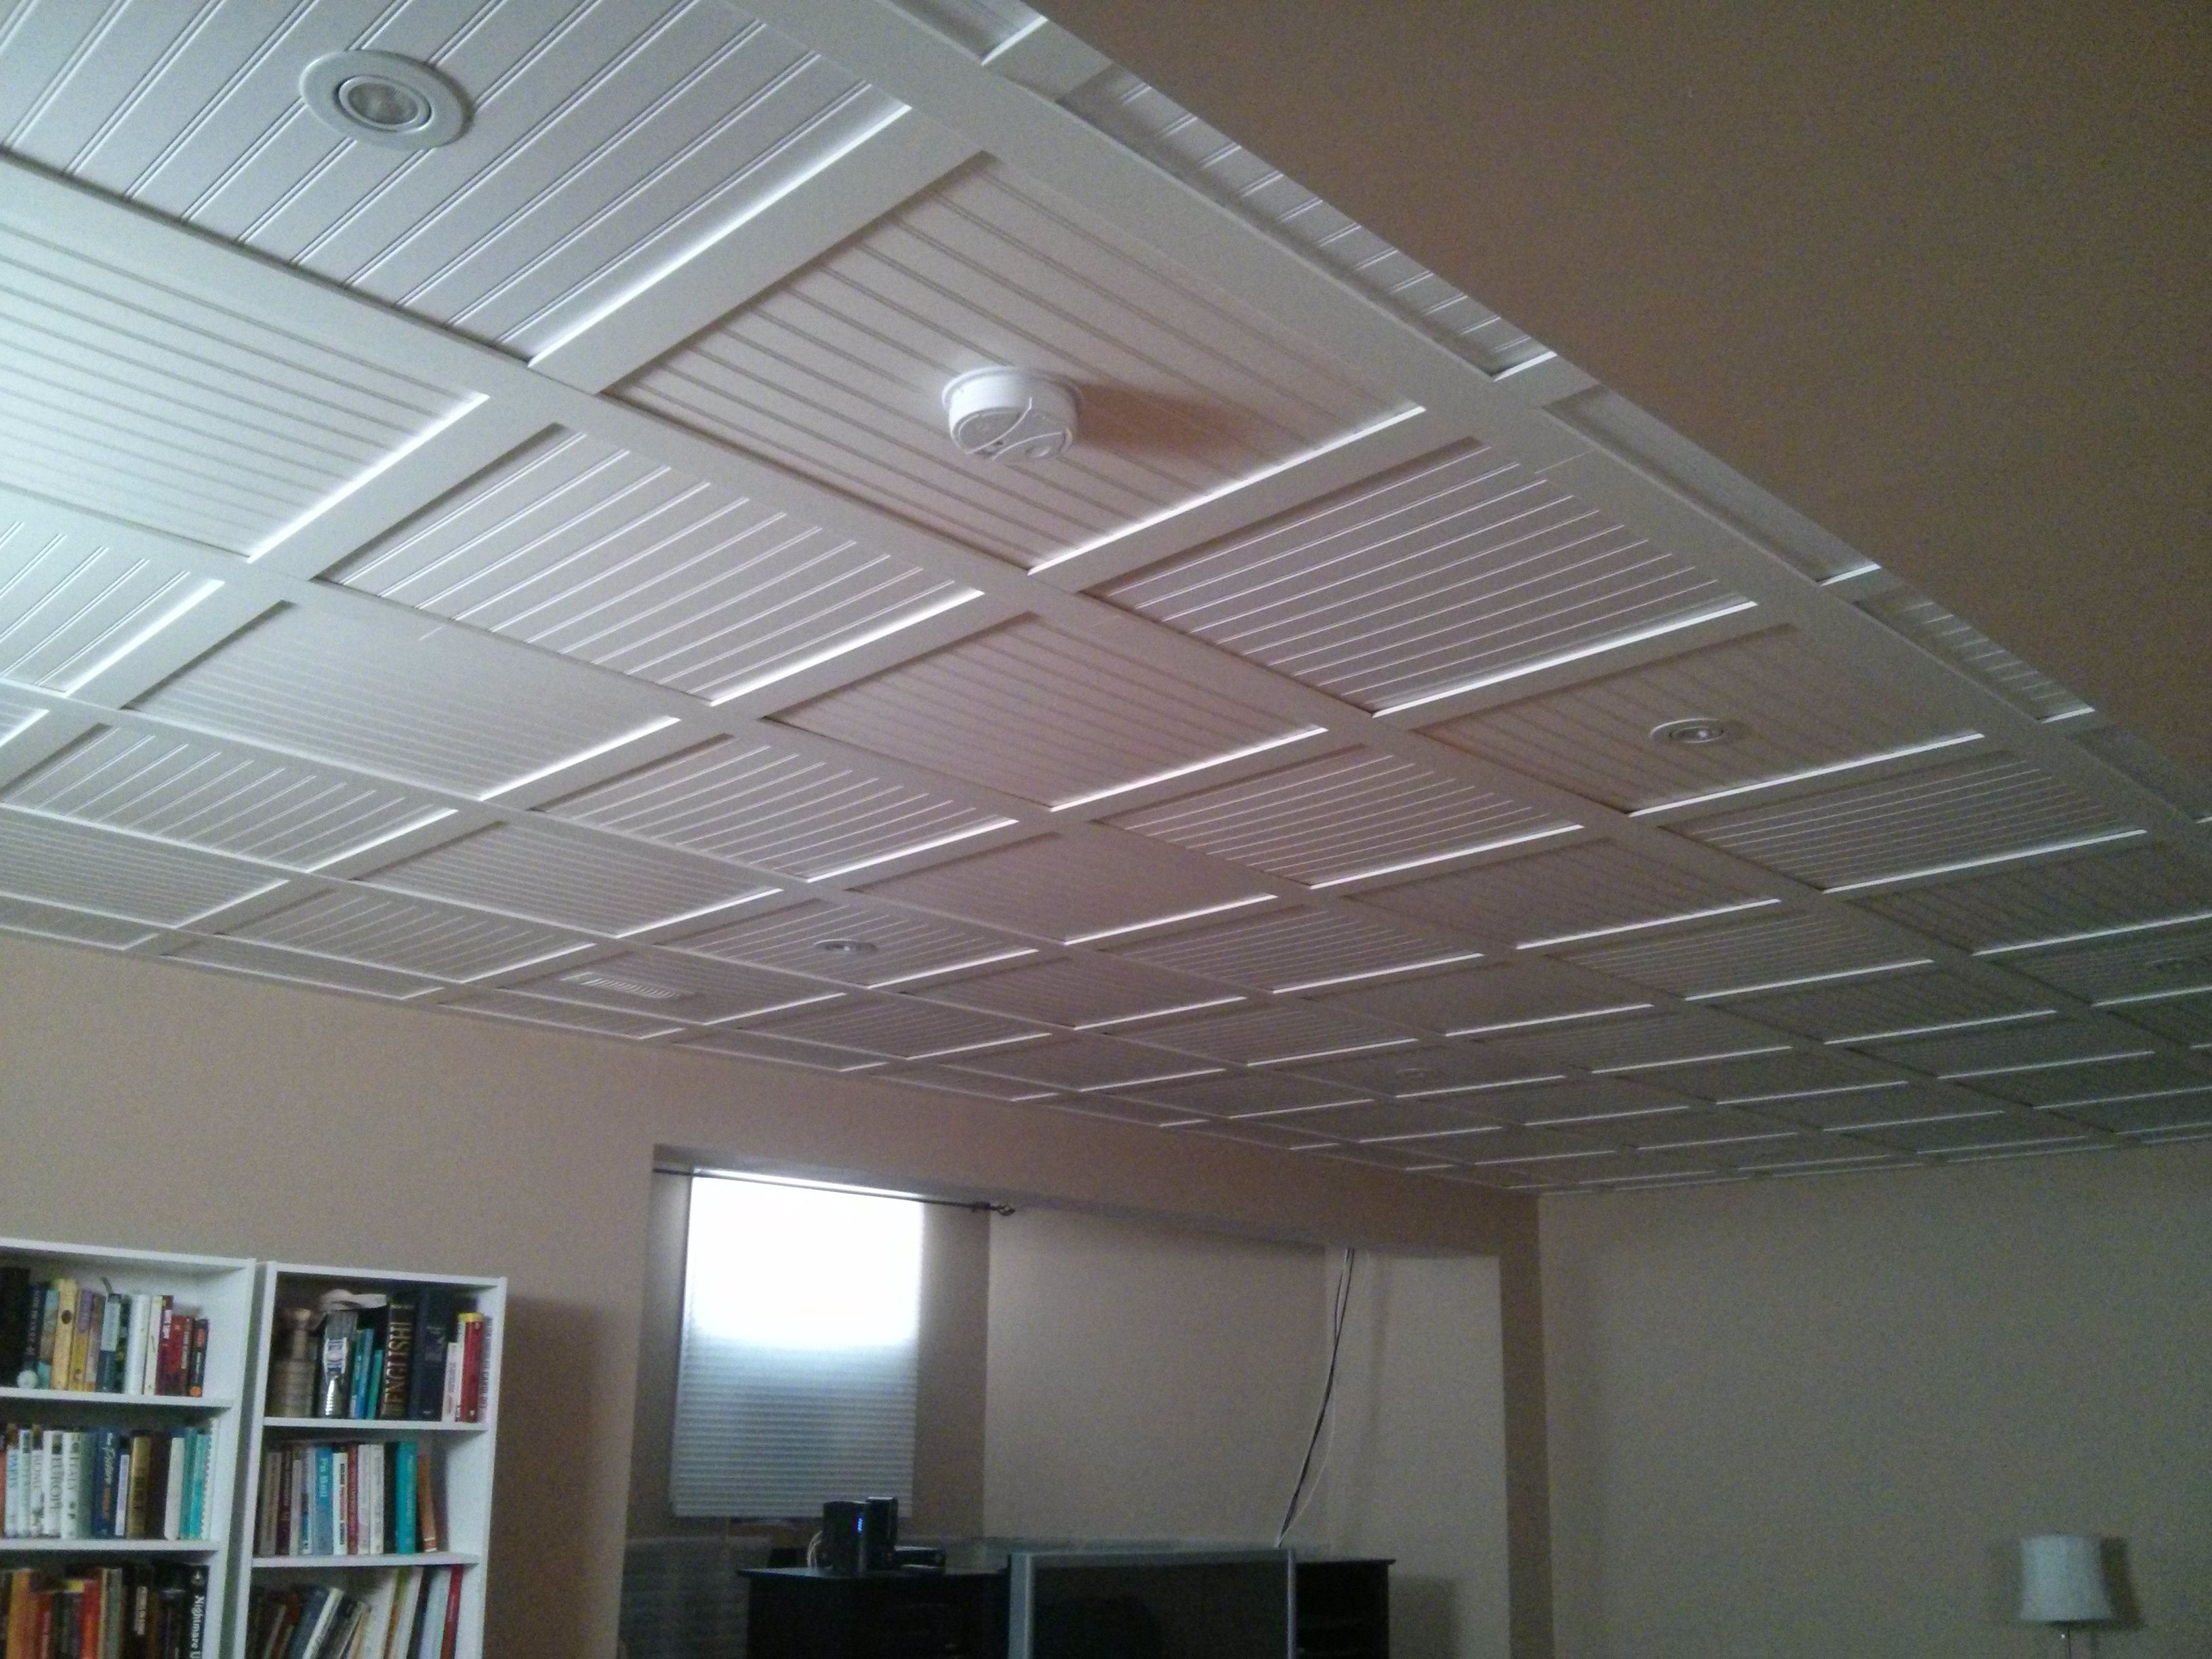 classic wood uses that standard frames of paneling in tiles down look laminate to drop for solid walk panels pin lay s system lighting attach ceiling this which integrates the woodtrac ceilings spot provides easily